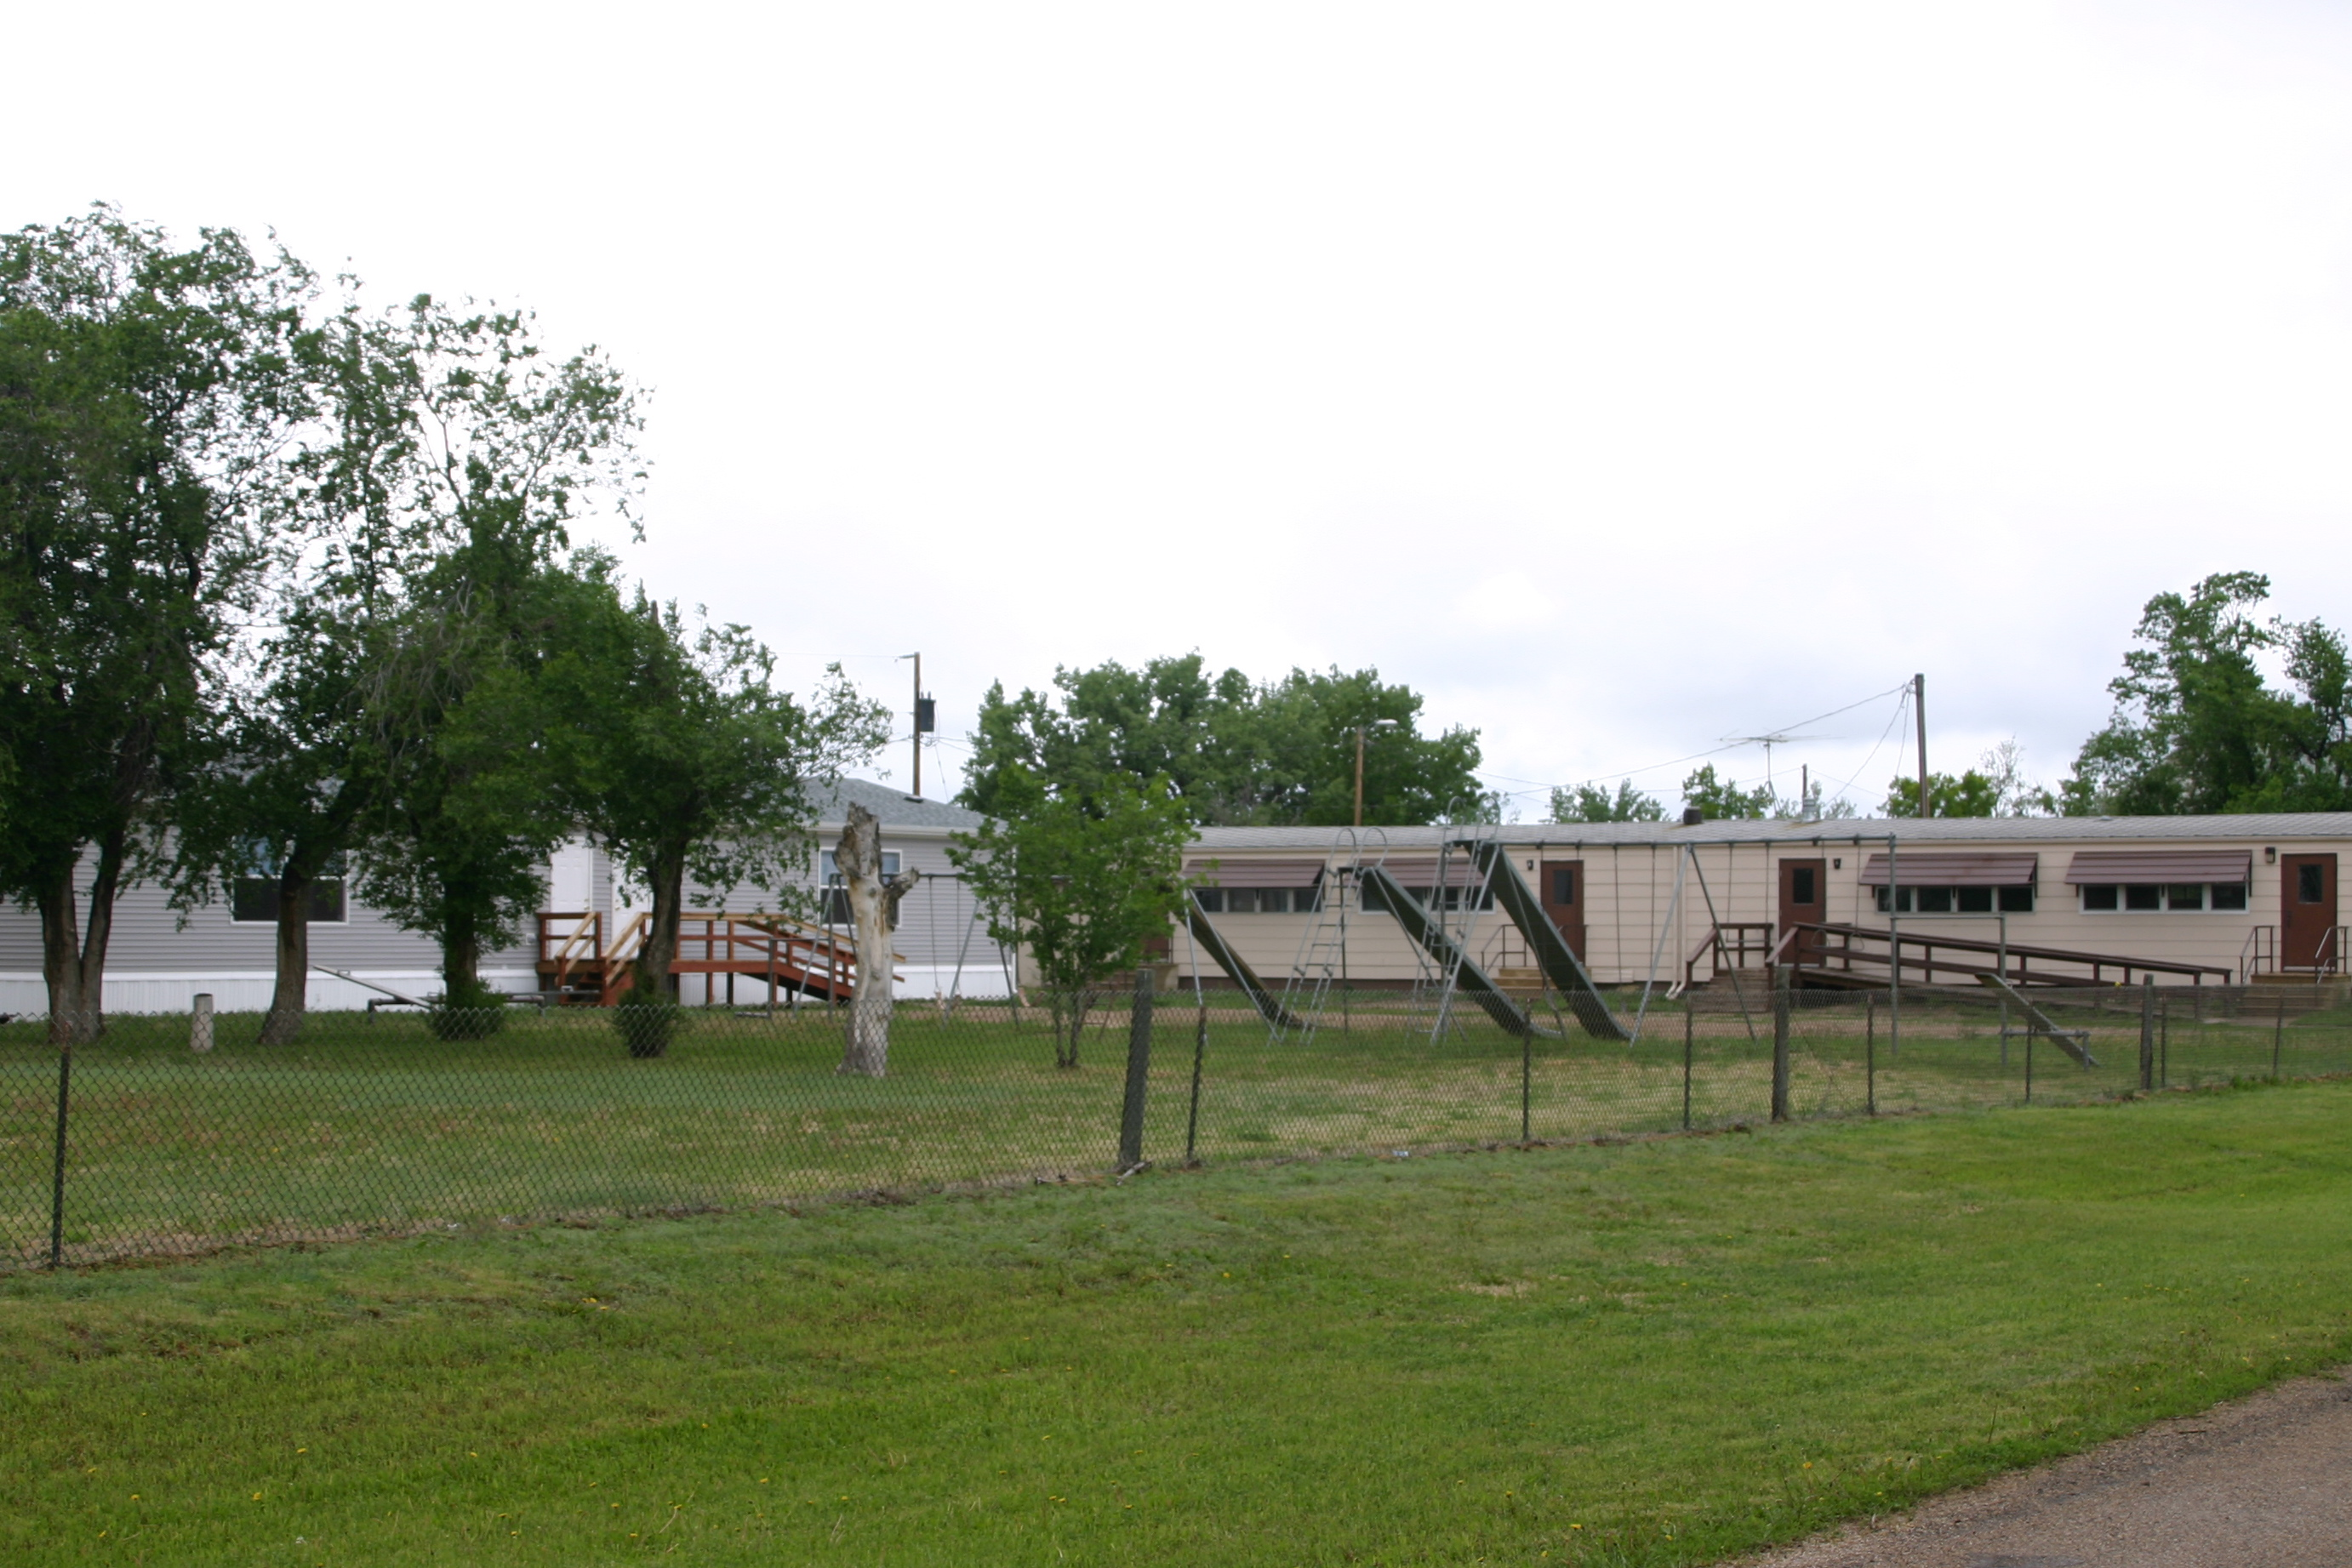 camp crook dating Information directory the following information should be submitted to the entities camp crook, sd 57724 creighton, sd 57790 (605) 797-4522.